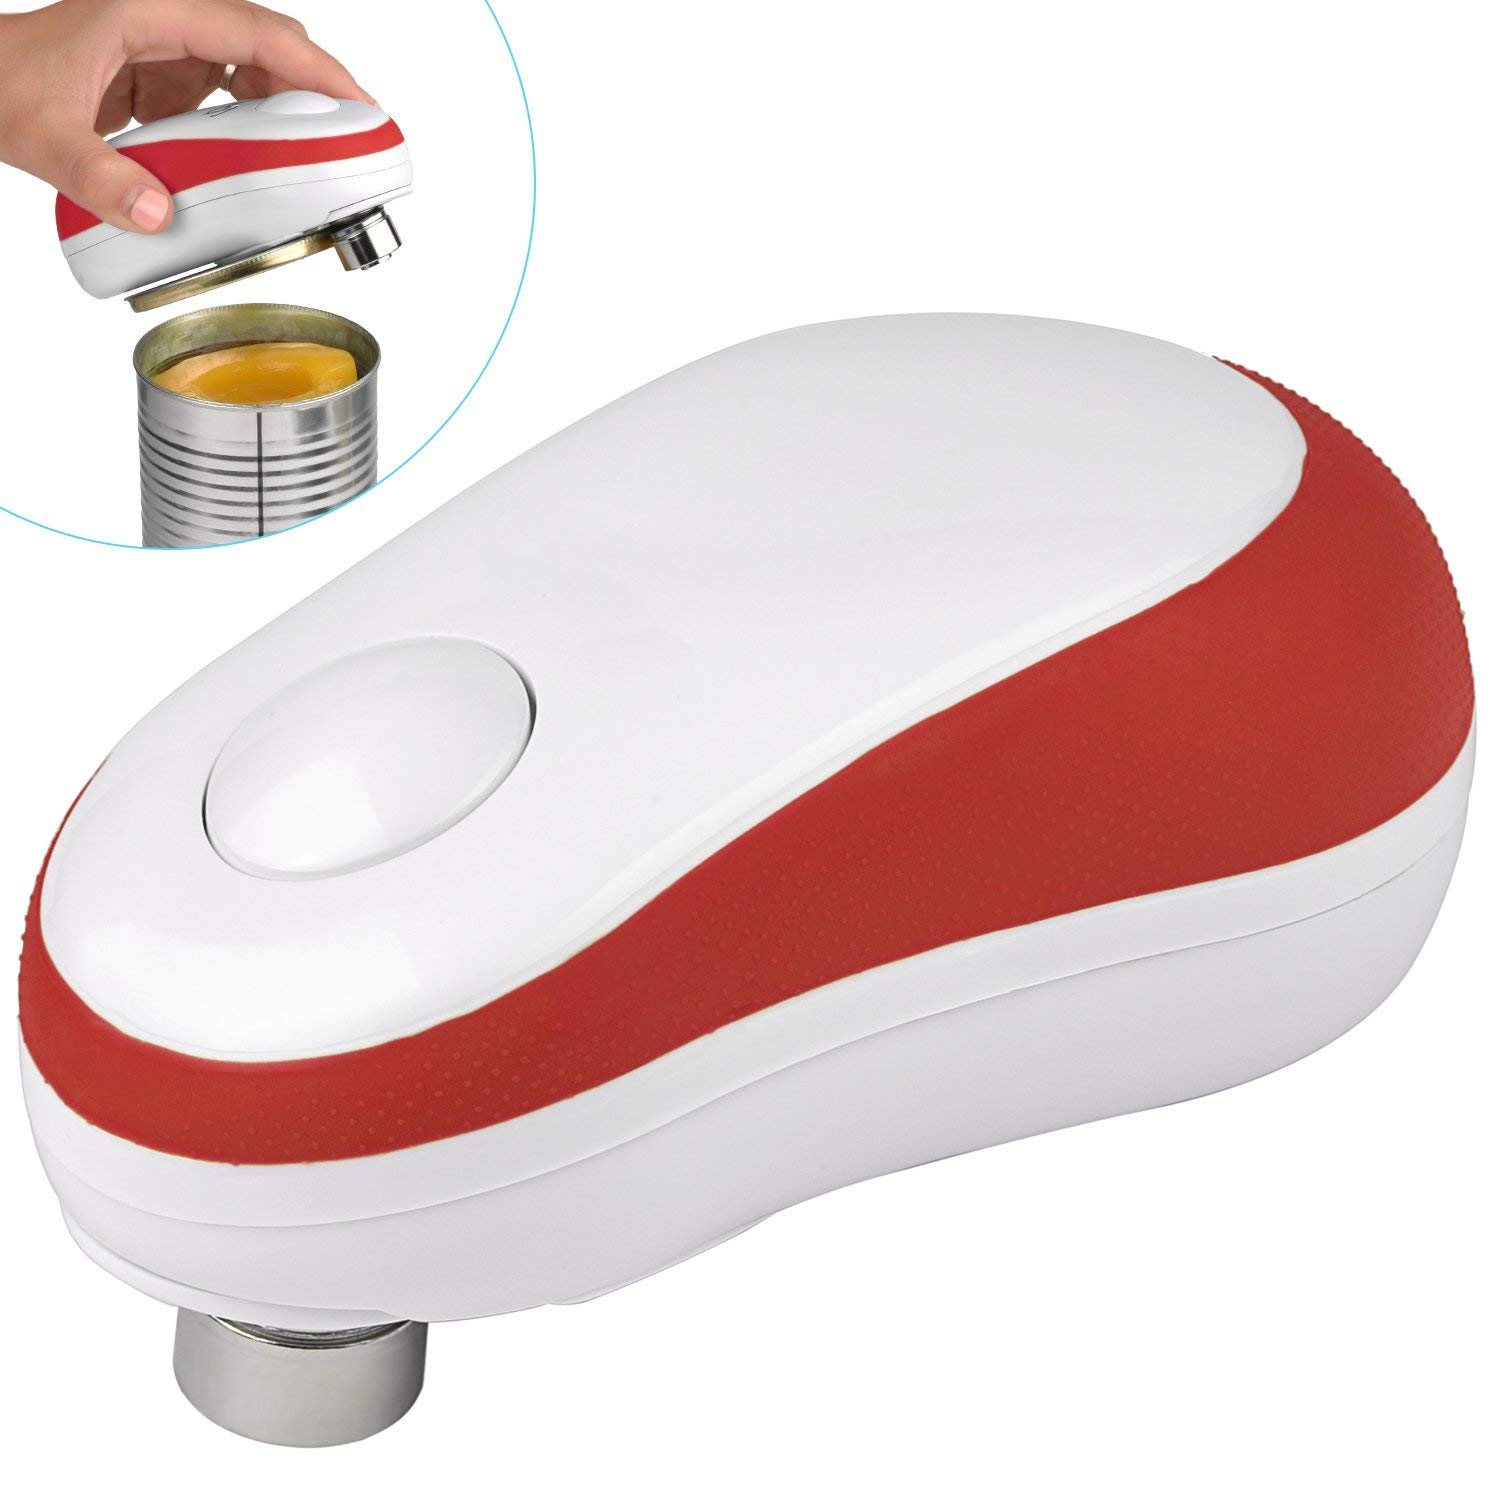 Electric Can Opener, Starew Automatic Can Opener, Restaurant can opener,One Button Start & Auto Stop, Safety Tin Opener with Smooth Edge Left (red)